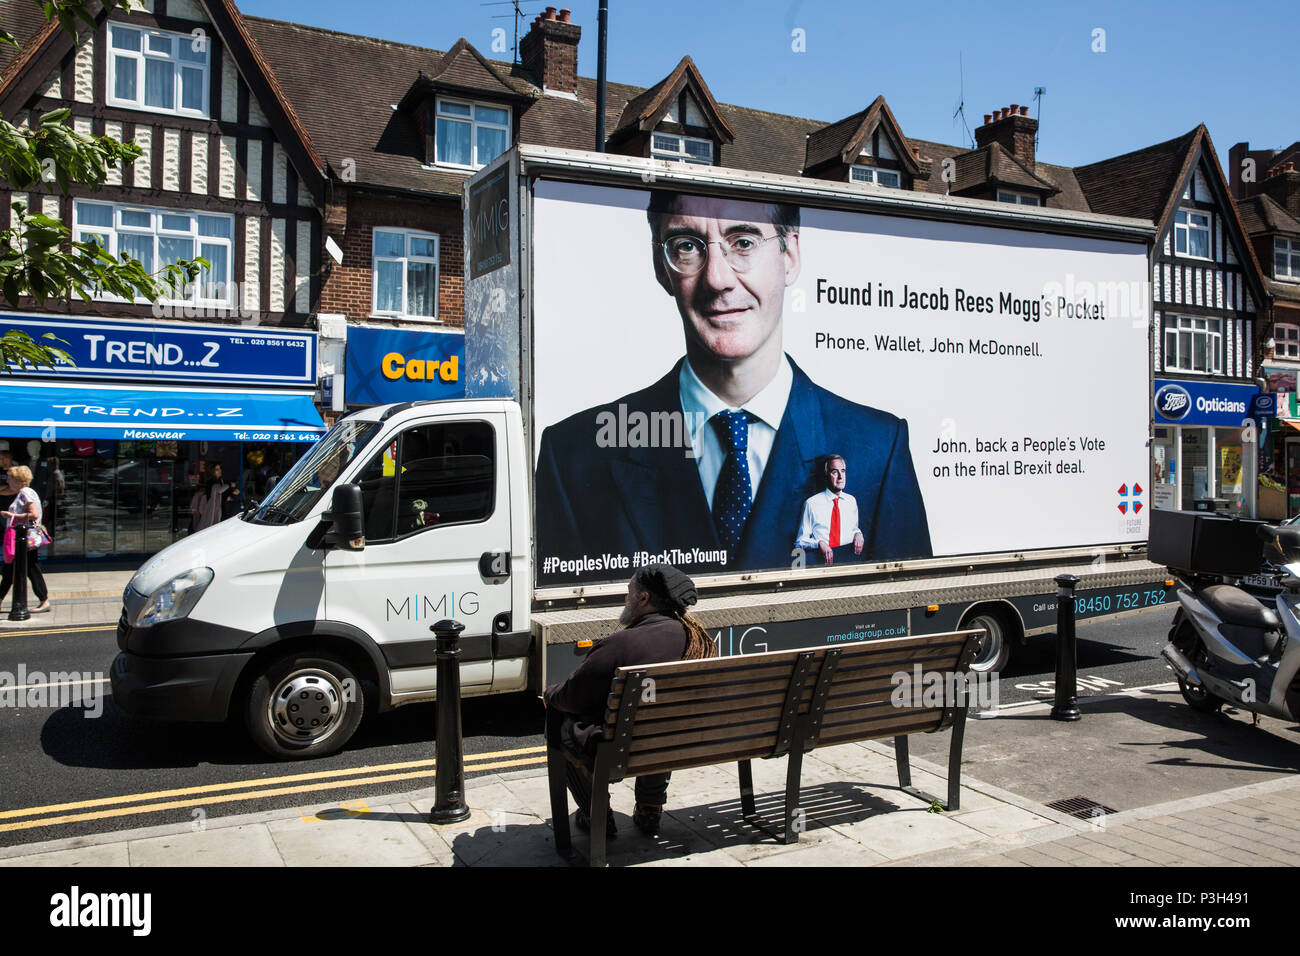 Hayes, UK. 18th June, 2018. A billboard commissioned by young persons' anti-Brexit campaign group Our Future Our Choice (OFOC) showing Shadow Chancellor John McDonnell in the pocket of prominent pro-Brexit MP Jacob Rees-Mogg tours his constituency of Hayes and Harlington as part of a campaign targeting high-profile members of the Shadow Cabinet. Credit: Mark Kerrison/Alamy Live News - Stock Image